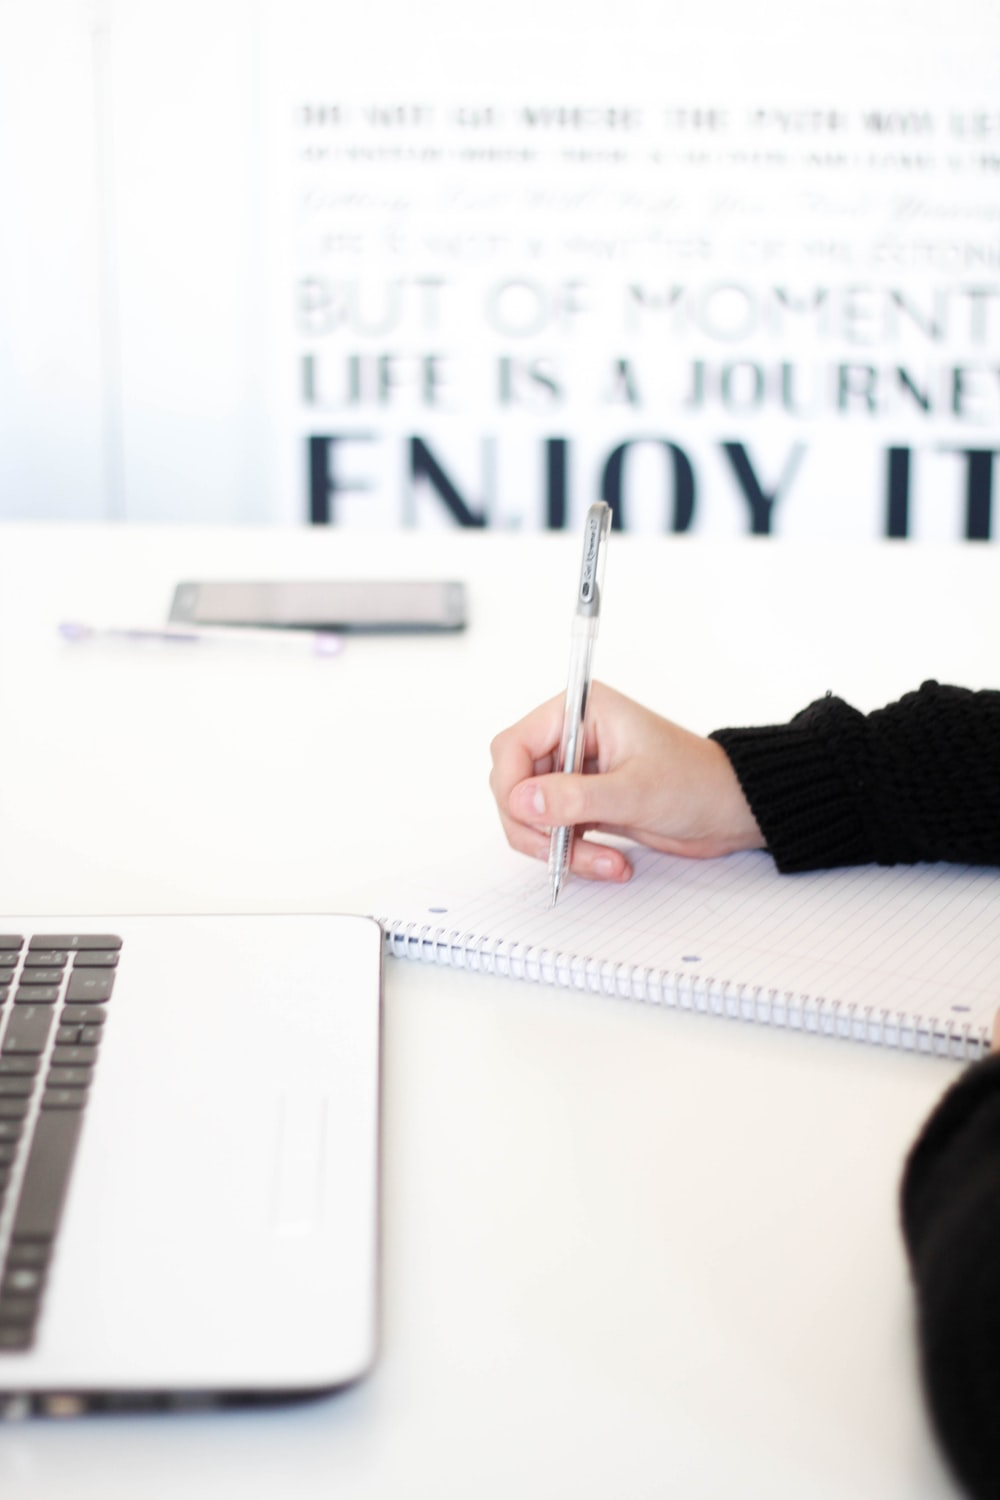 A person writing on a piece of paper, with a motivational quote in the background.